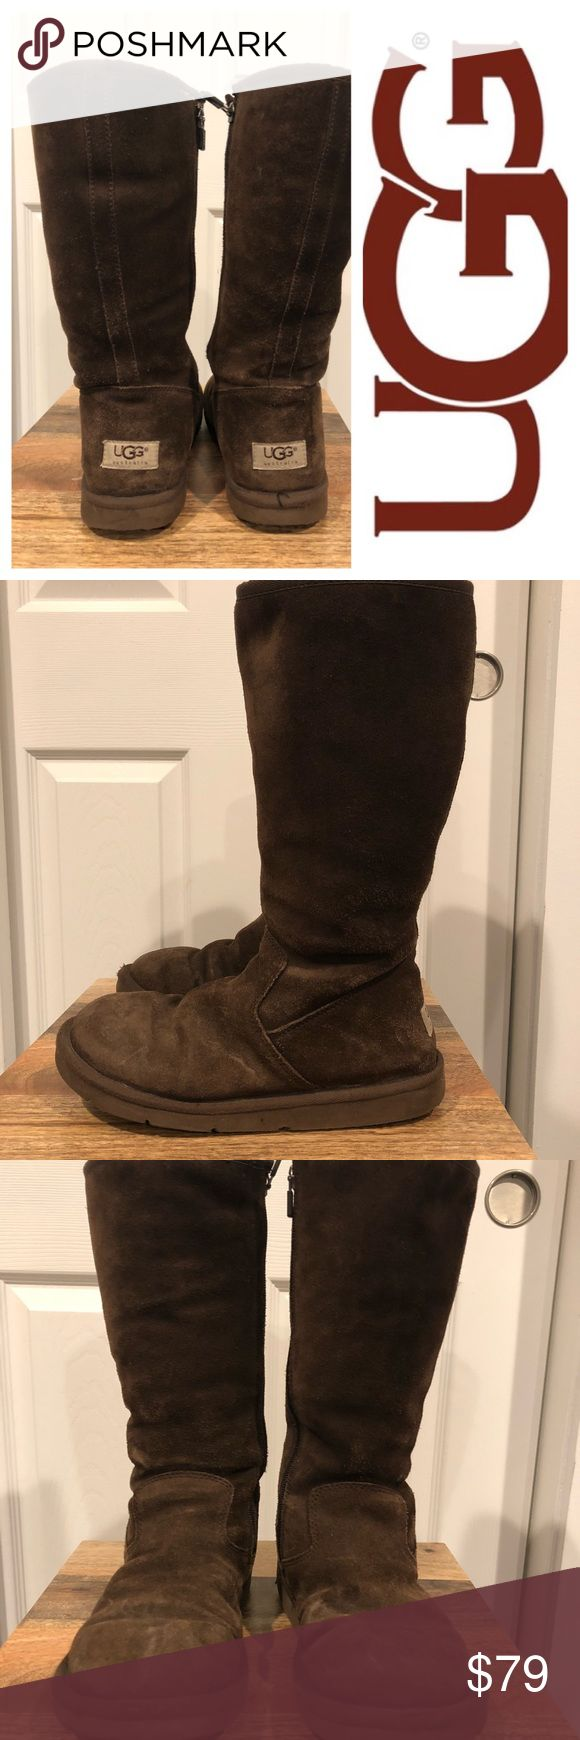 UGG Australia Dark Brown zip up Boots 7 Size 7. Worn a few times but in excellent preowned condition. ugg Shoes Combat & Moto Boots